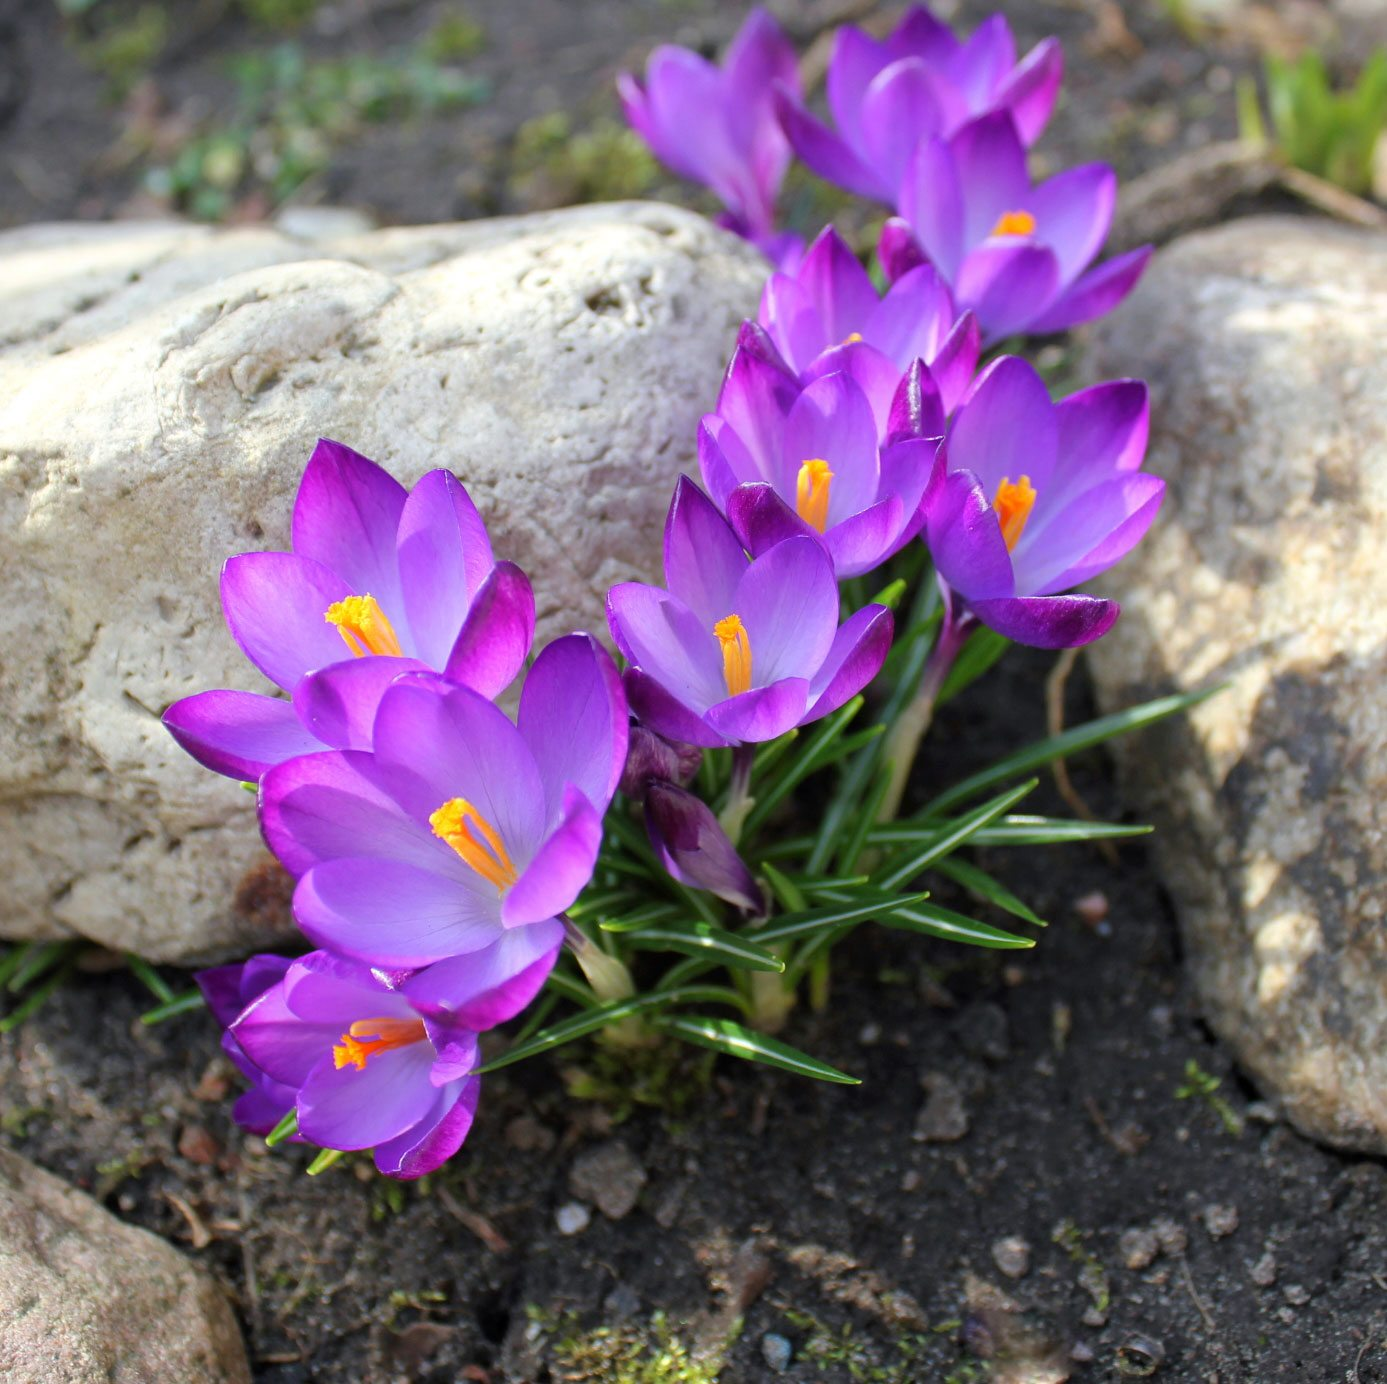 Crocus Bulb Growing What Is The Best Time To Plant A Crocus